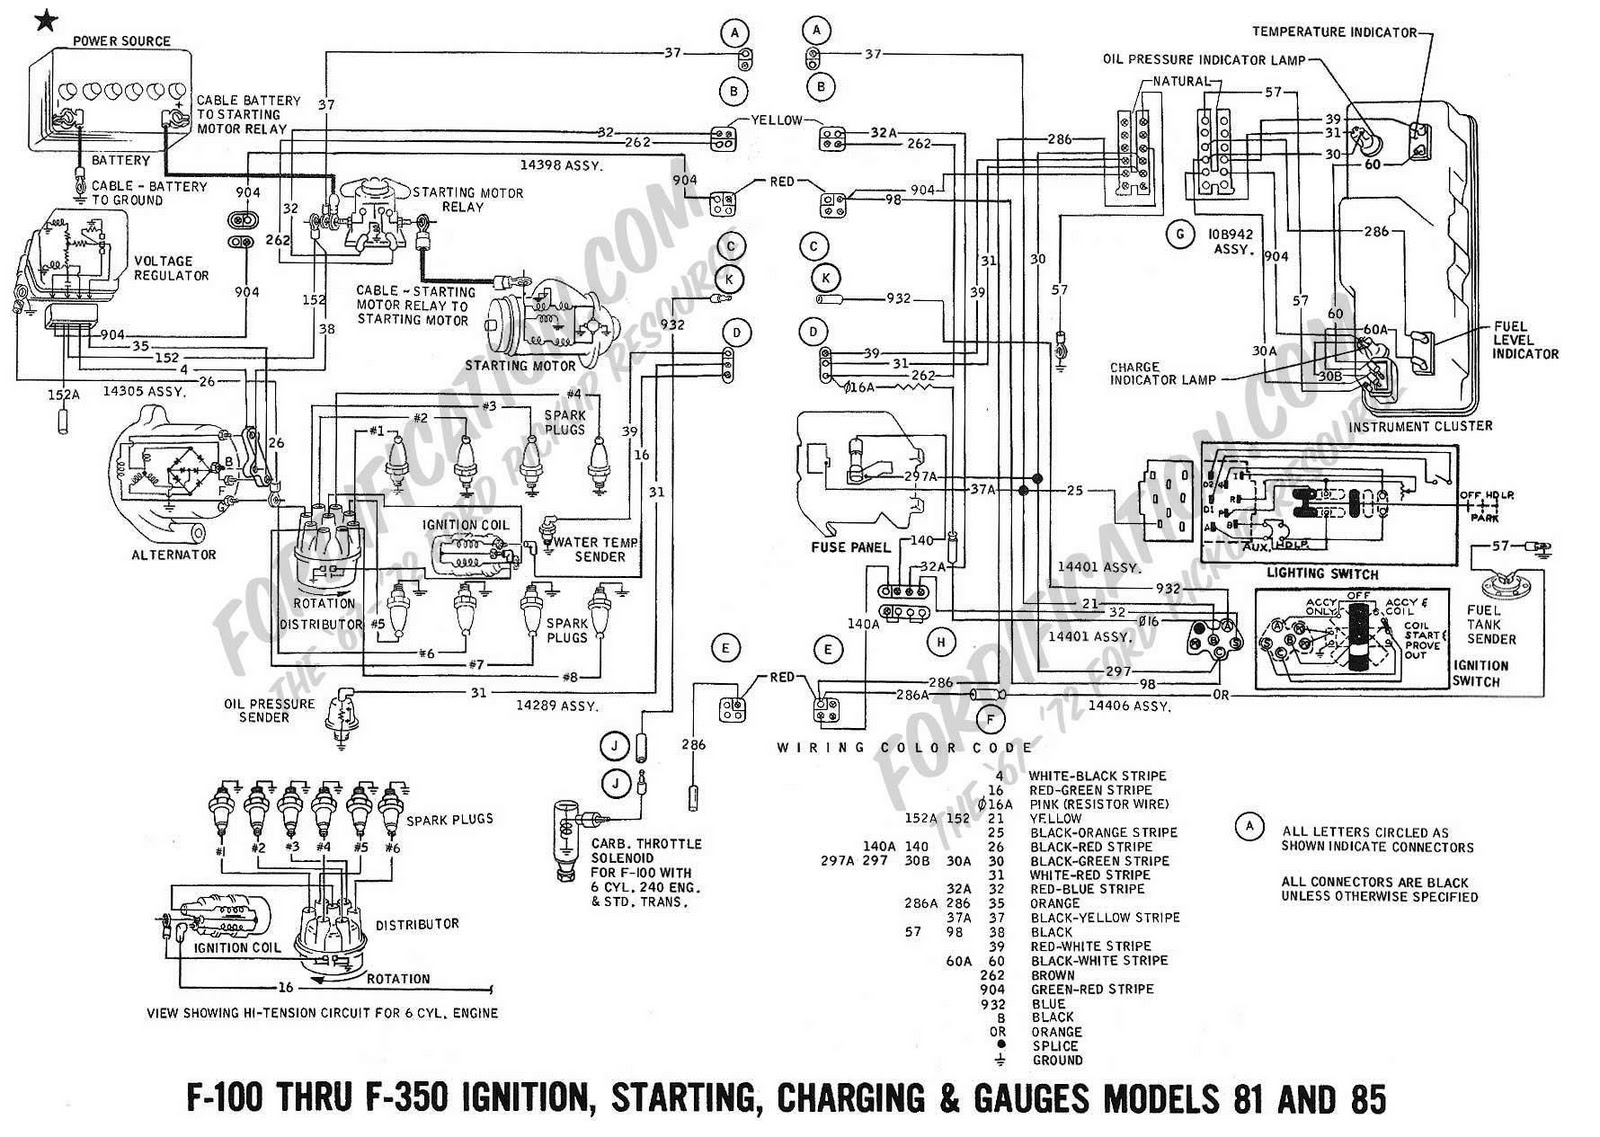 1970 ford f100 wiring harness simple wiring diagram 1957 pontiac wiring diagram 1962 ford radio wiring diagram [ 1600 x 1137 Pixel ]